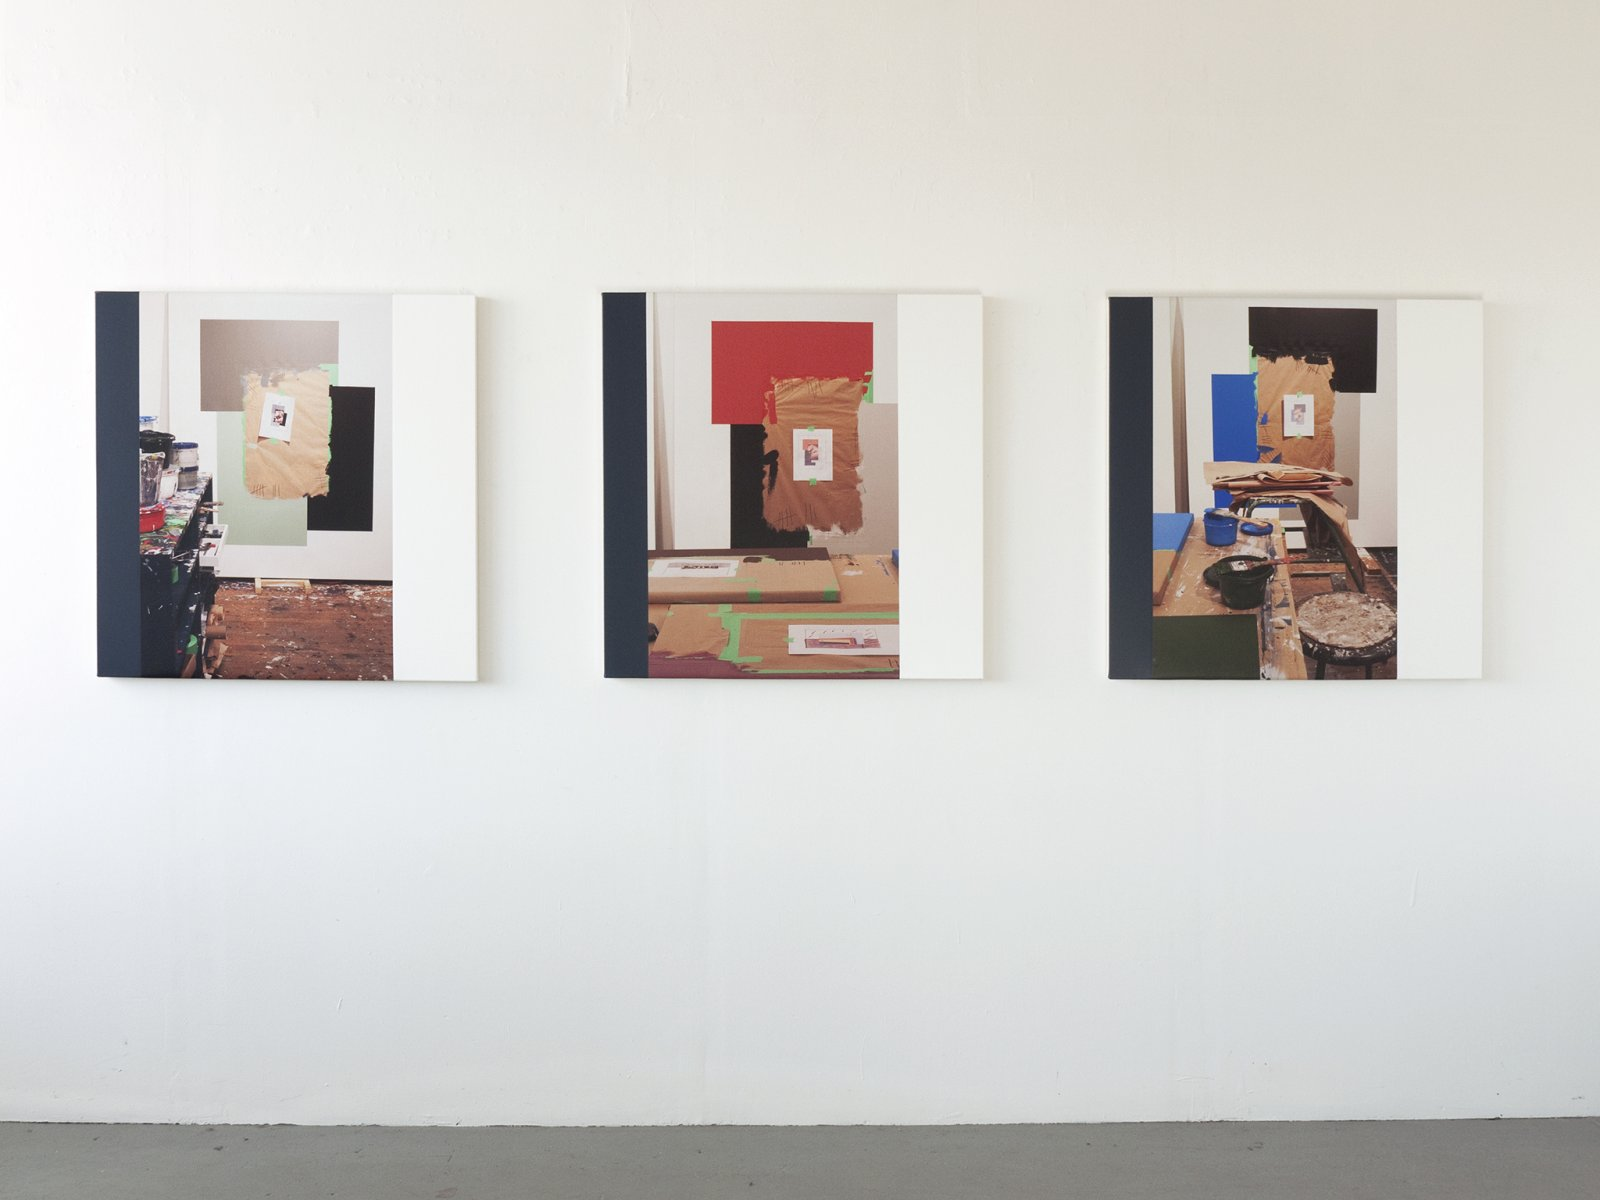 Ian Wallace,Abstract Composition(The Colours I–III),2012, photolaminate with acrylic on canvas, each 36 x 36 in. (91 x 91 cm)